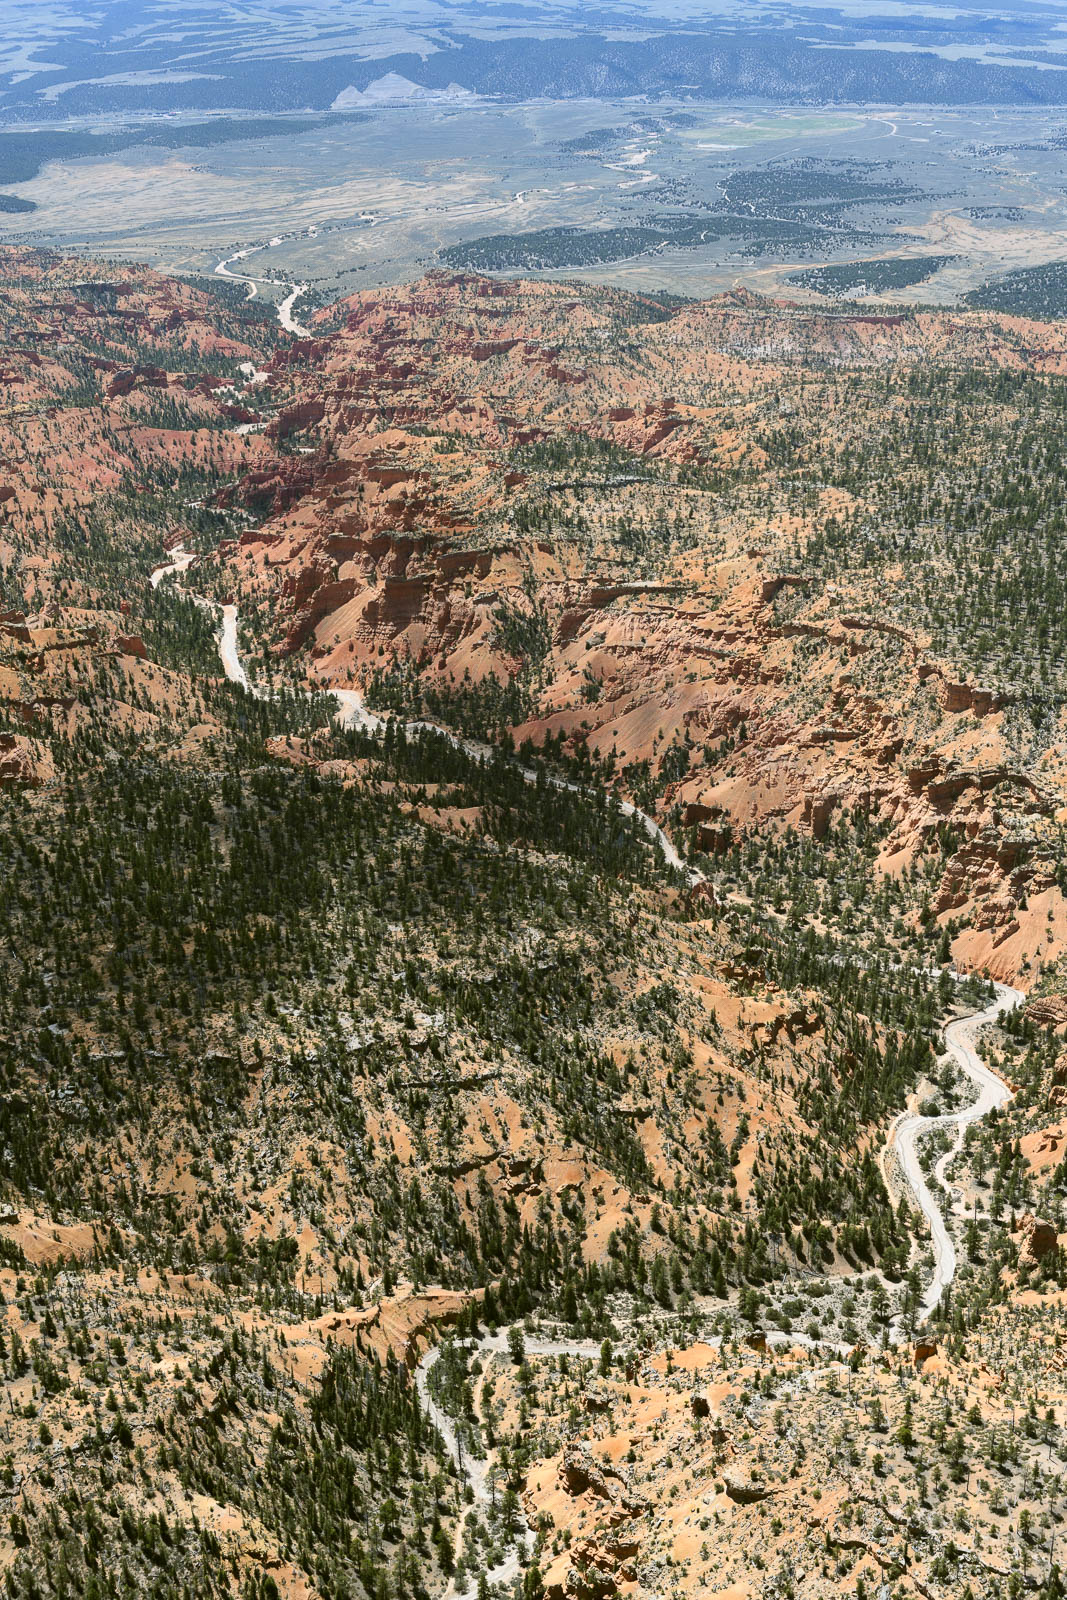 Approaching Bryce Canyon, but we must head back – low on fuel and too hot to land there